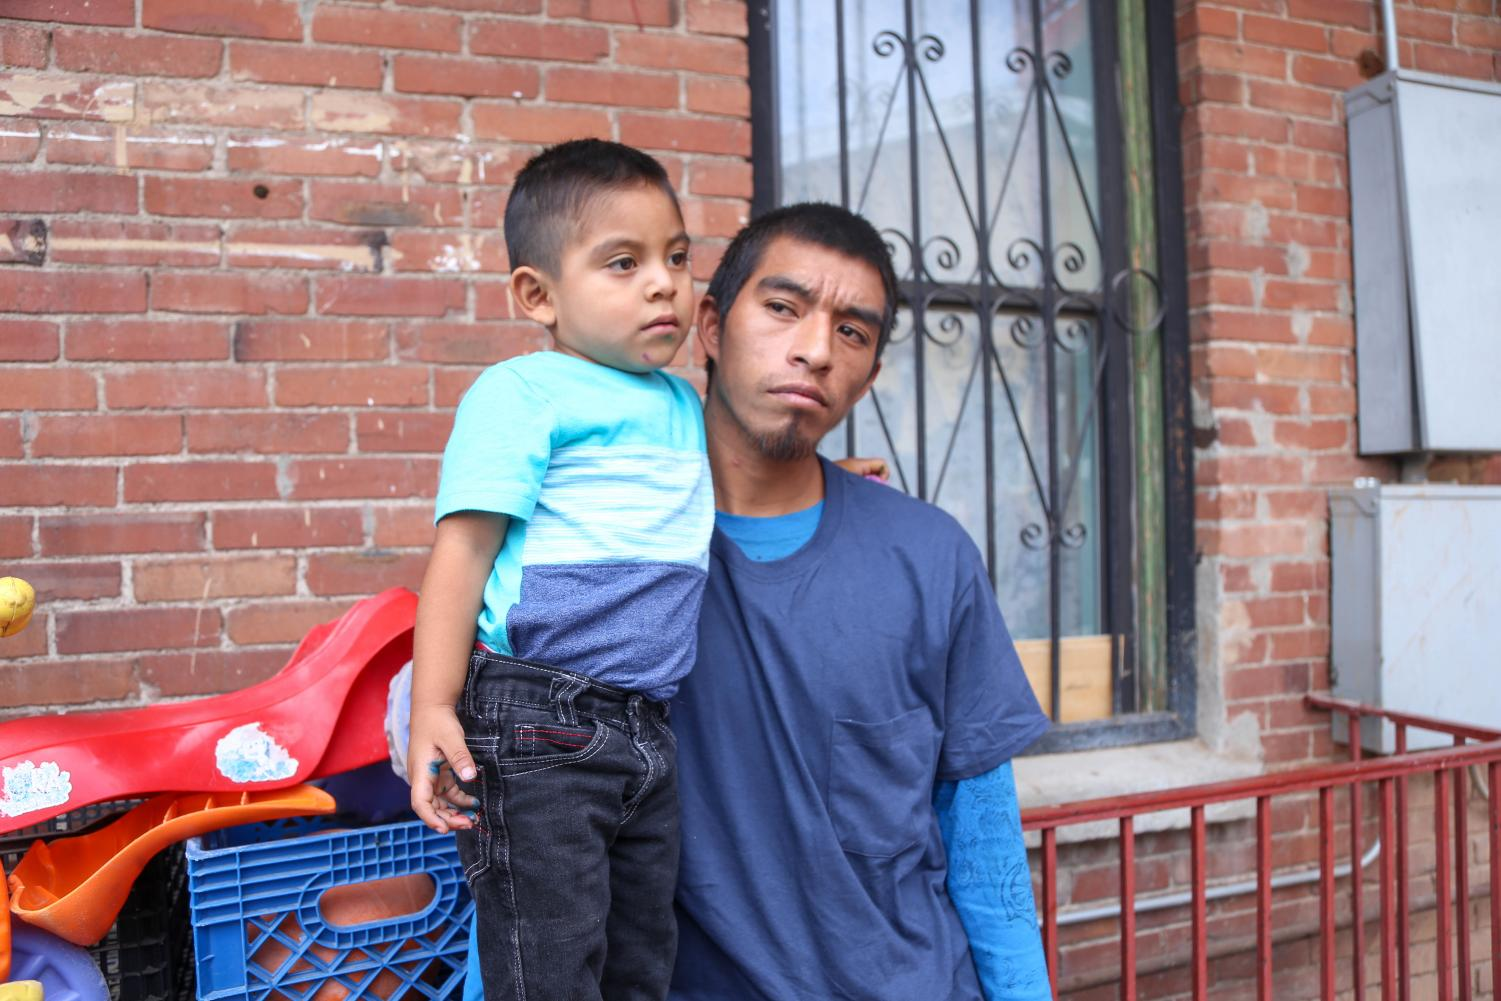 Pablo+and+his+son+Andre+pose+for+a+photo+outside+the+Annunciation+House+on+Wednesday%2C+July+11.+